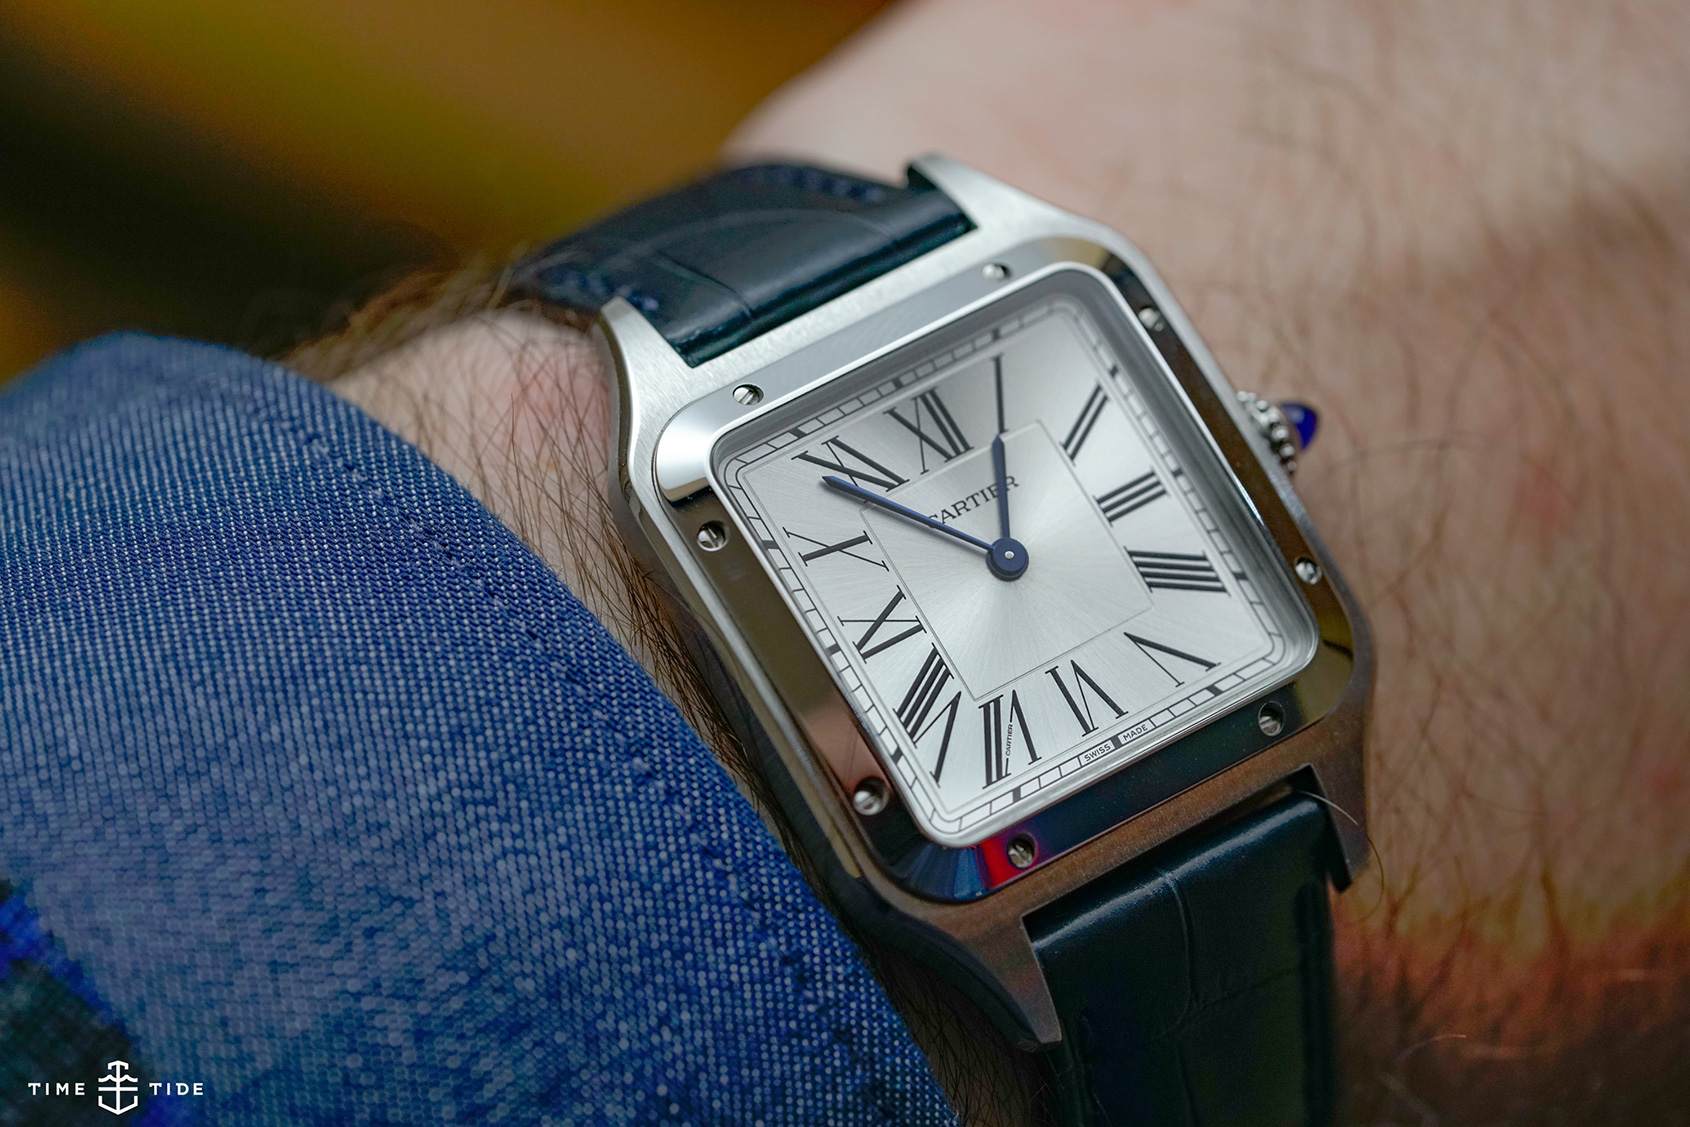 Watches & Wonders 2021 is cancelled, so here are our affordable favourites from last year (sob)